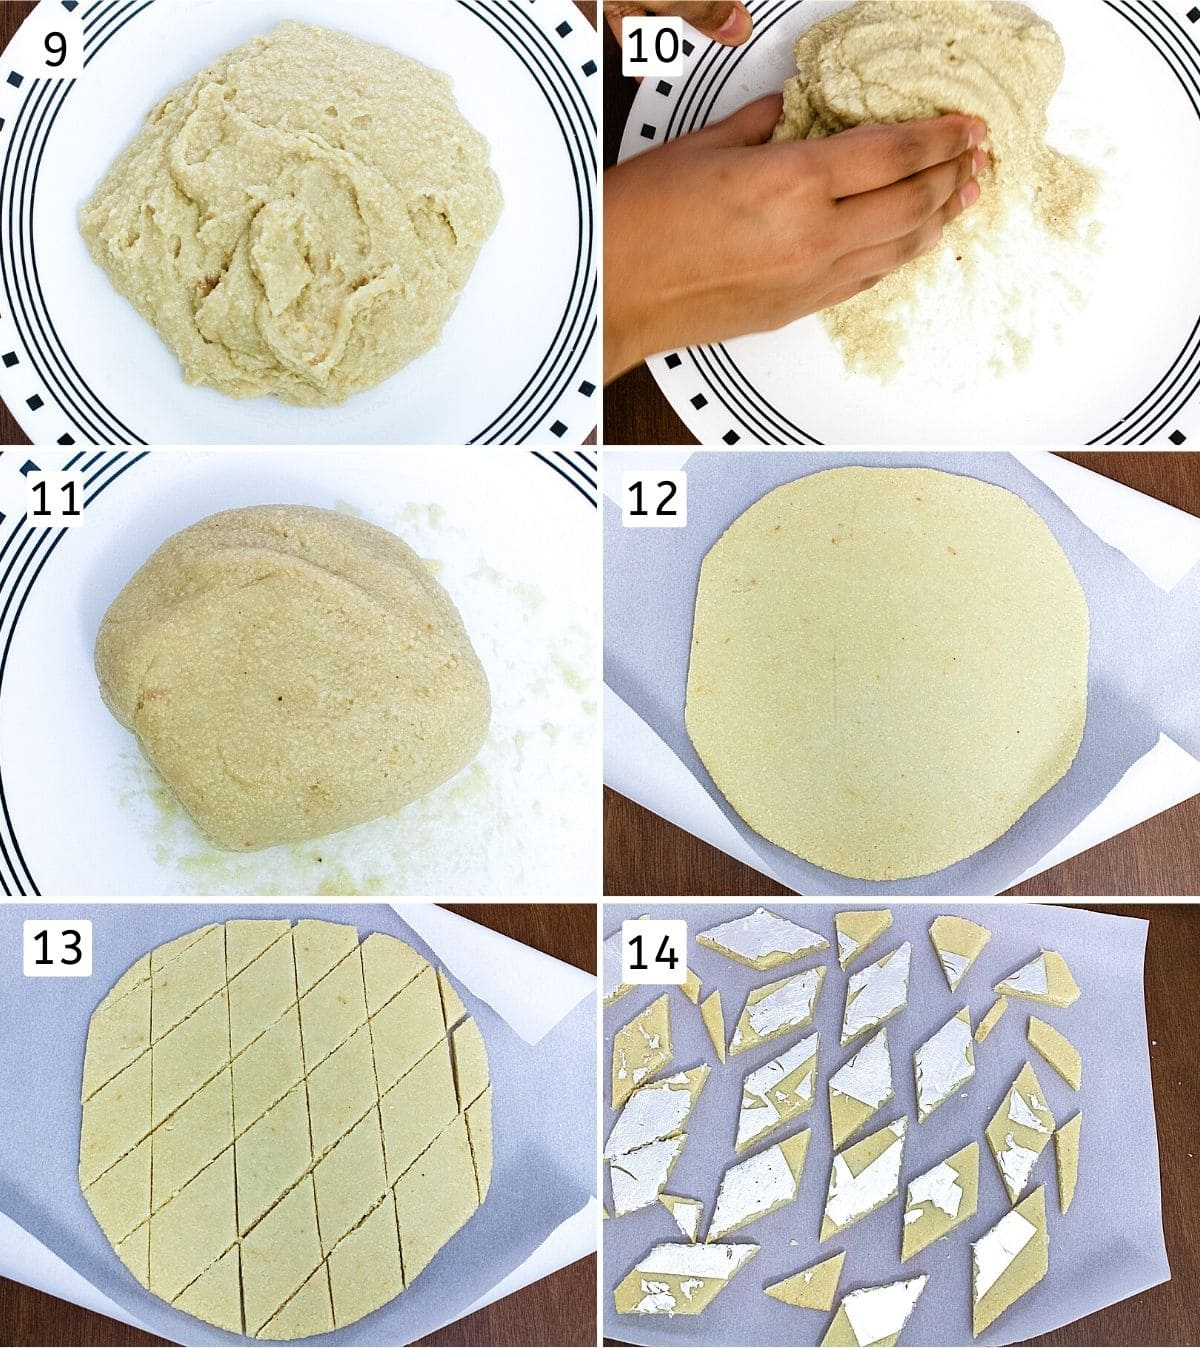 Collage of 6 images showing cooked dough, kneading, ready dough, rolled on parchment paper, cut into diamonds, decorated with varak